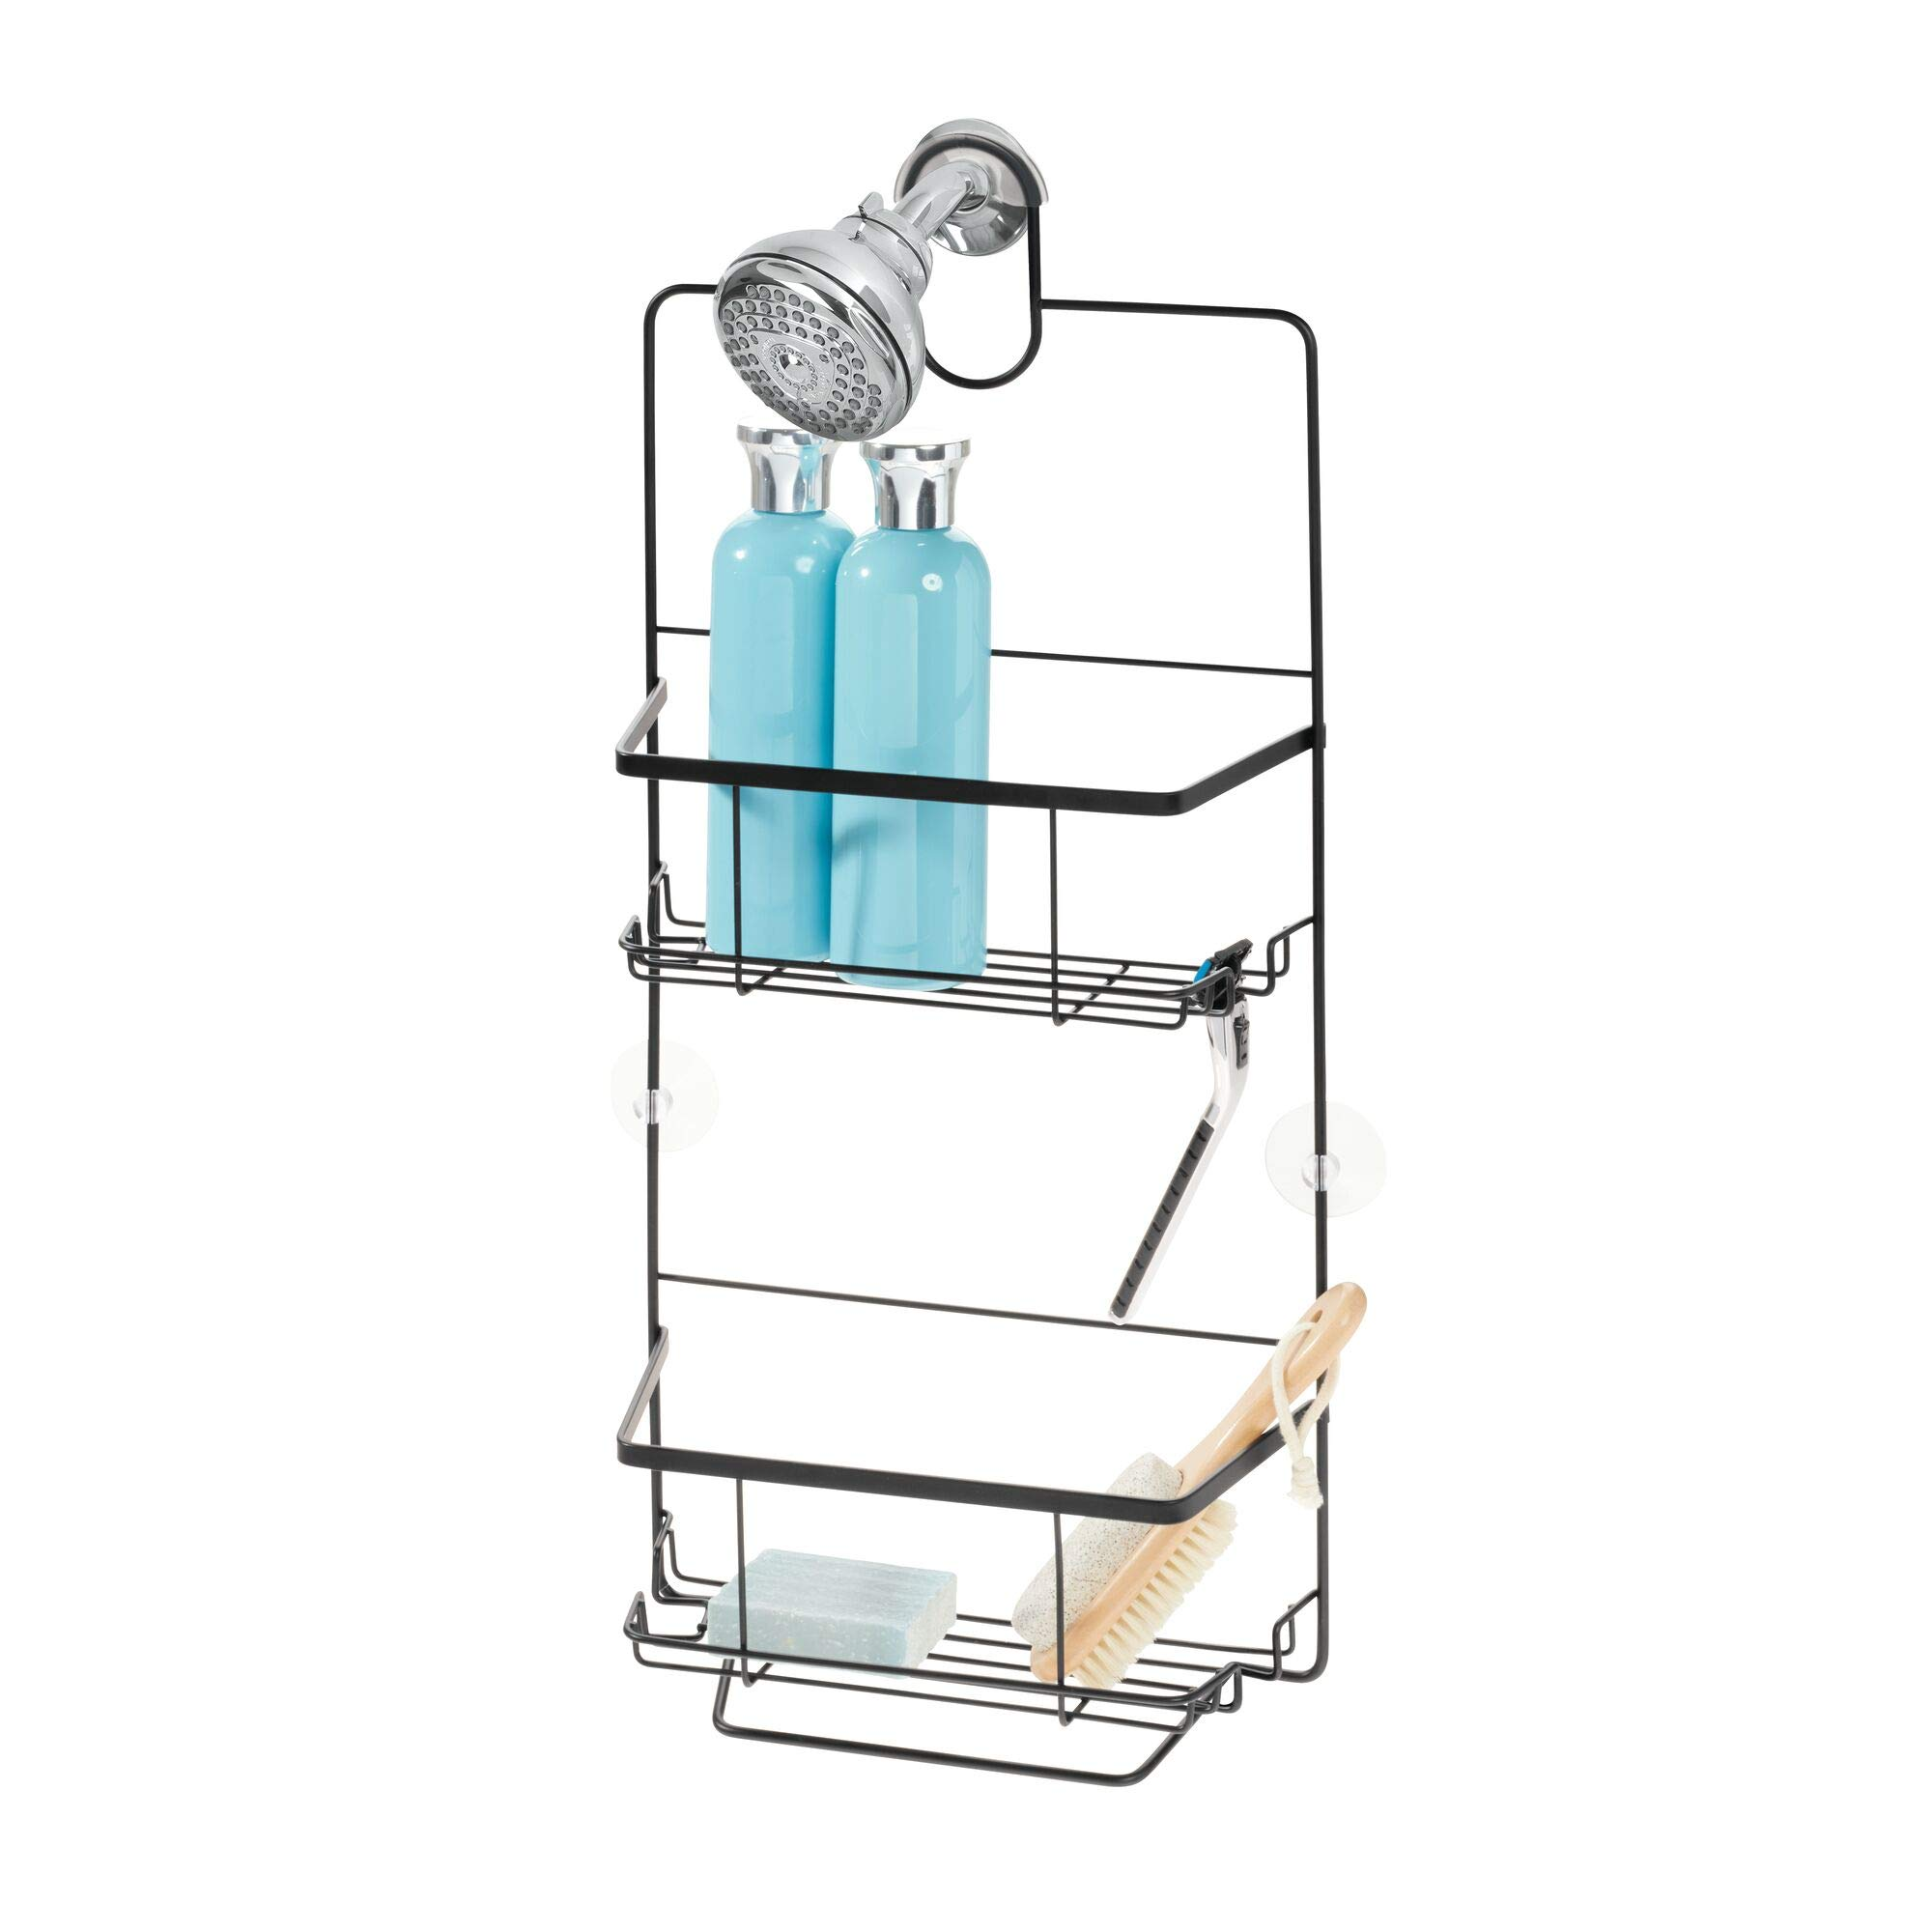 iDesign Everett Metal Hanging Shower Caddy, Extra Space for Shampoo, Conditioner, and Soap with Hooks for Razors, Towels, Loofahs, and More, 10.1'' x 3.88'' x 23'', Matte Black by iDesign